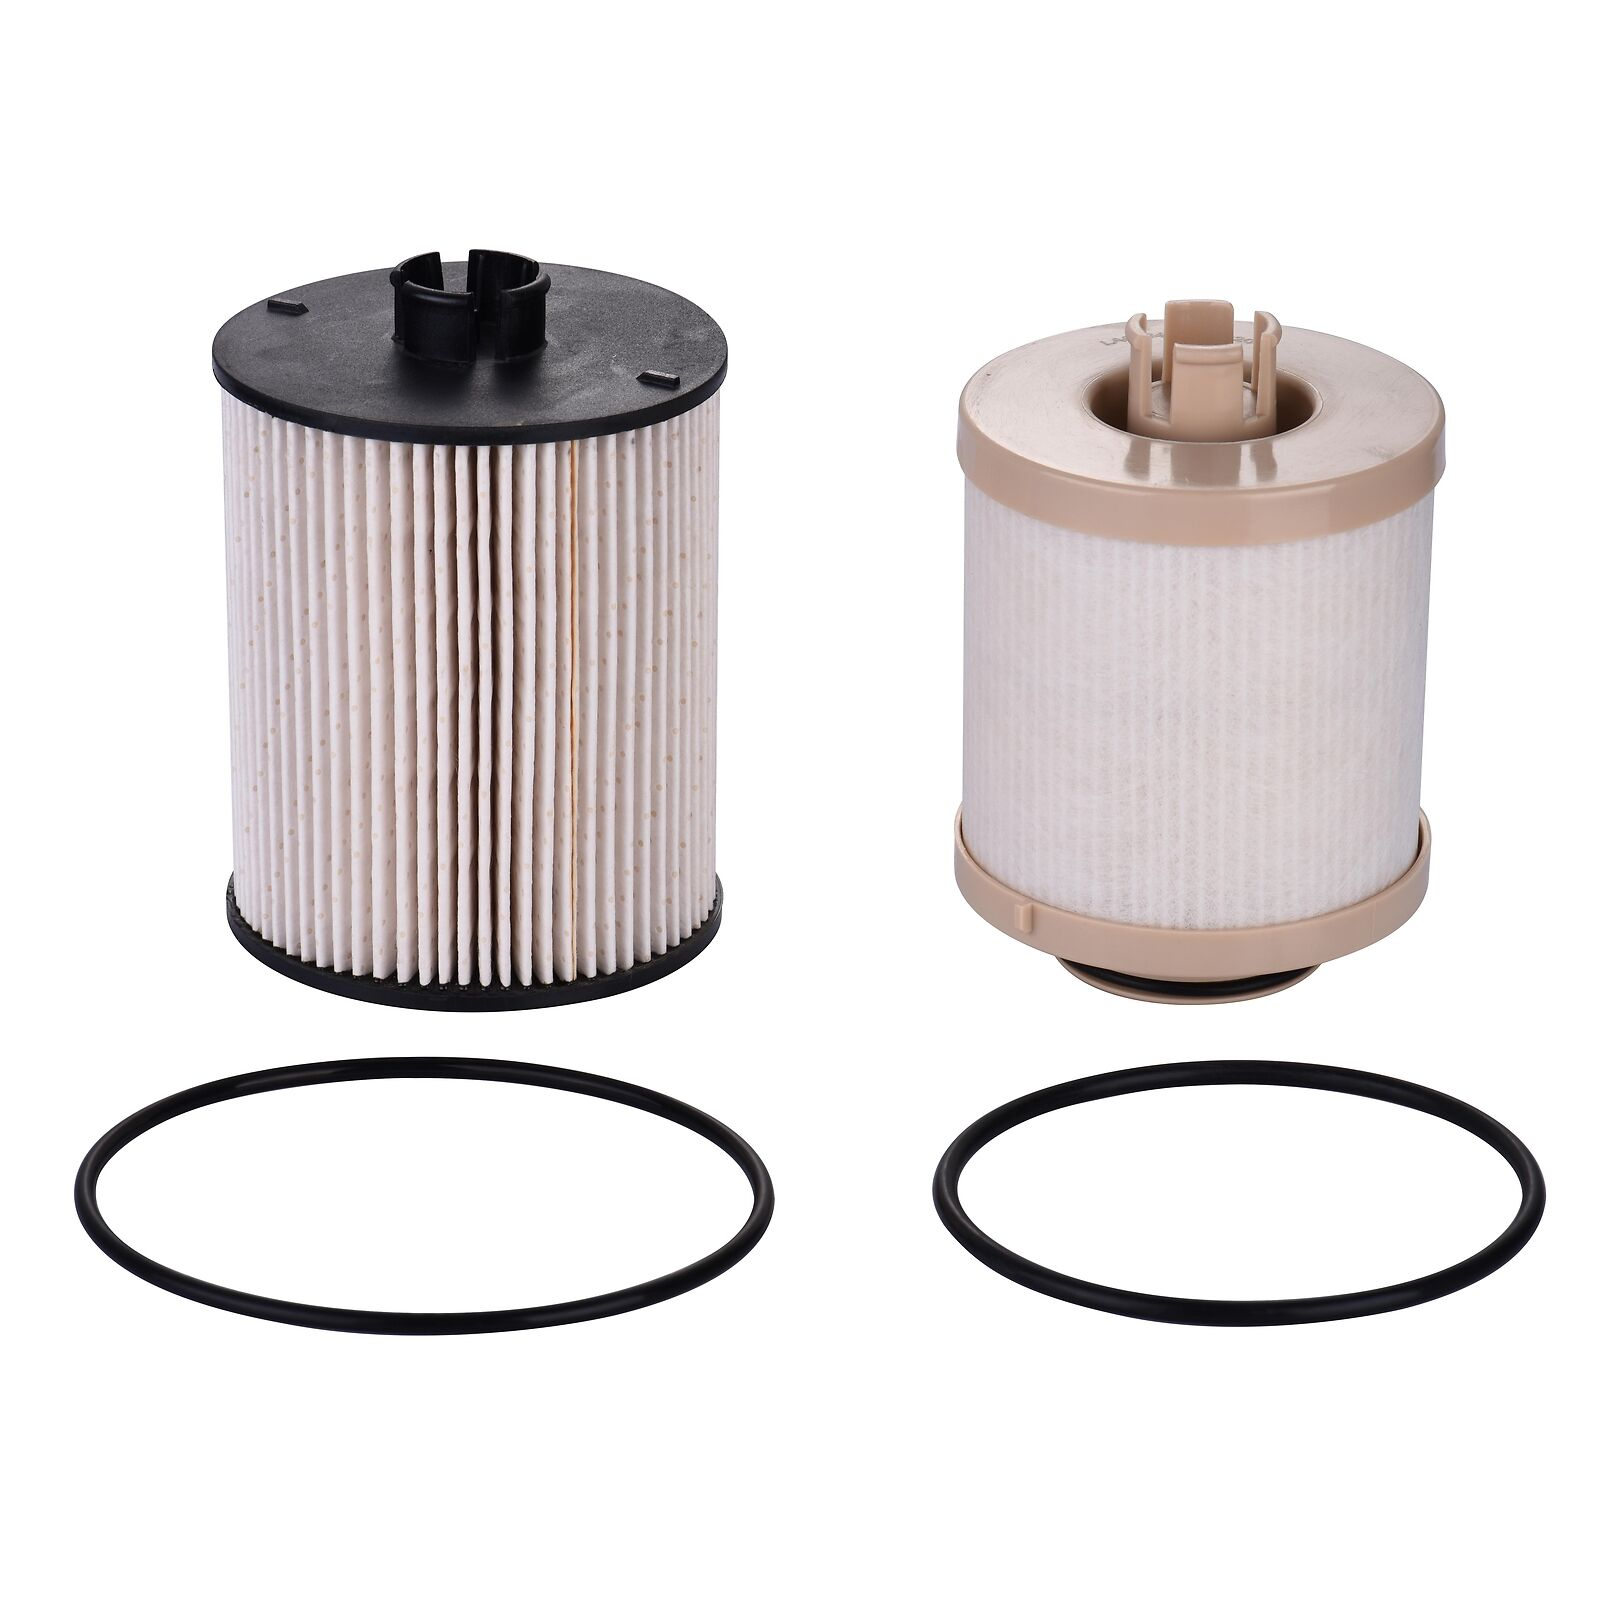 diesel fuel filter kit for 2008 2010 ford f 250 f 350 f. Black Bedroom Furniture Sets. Home Design Ideas